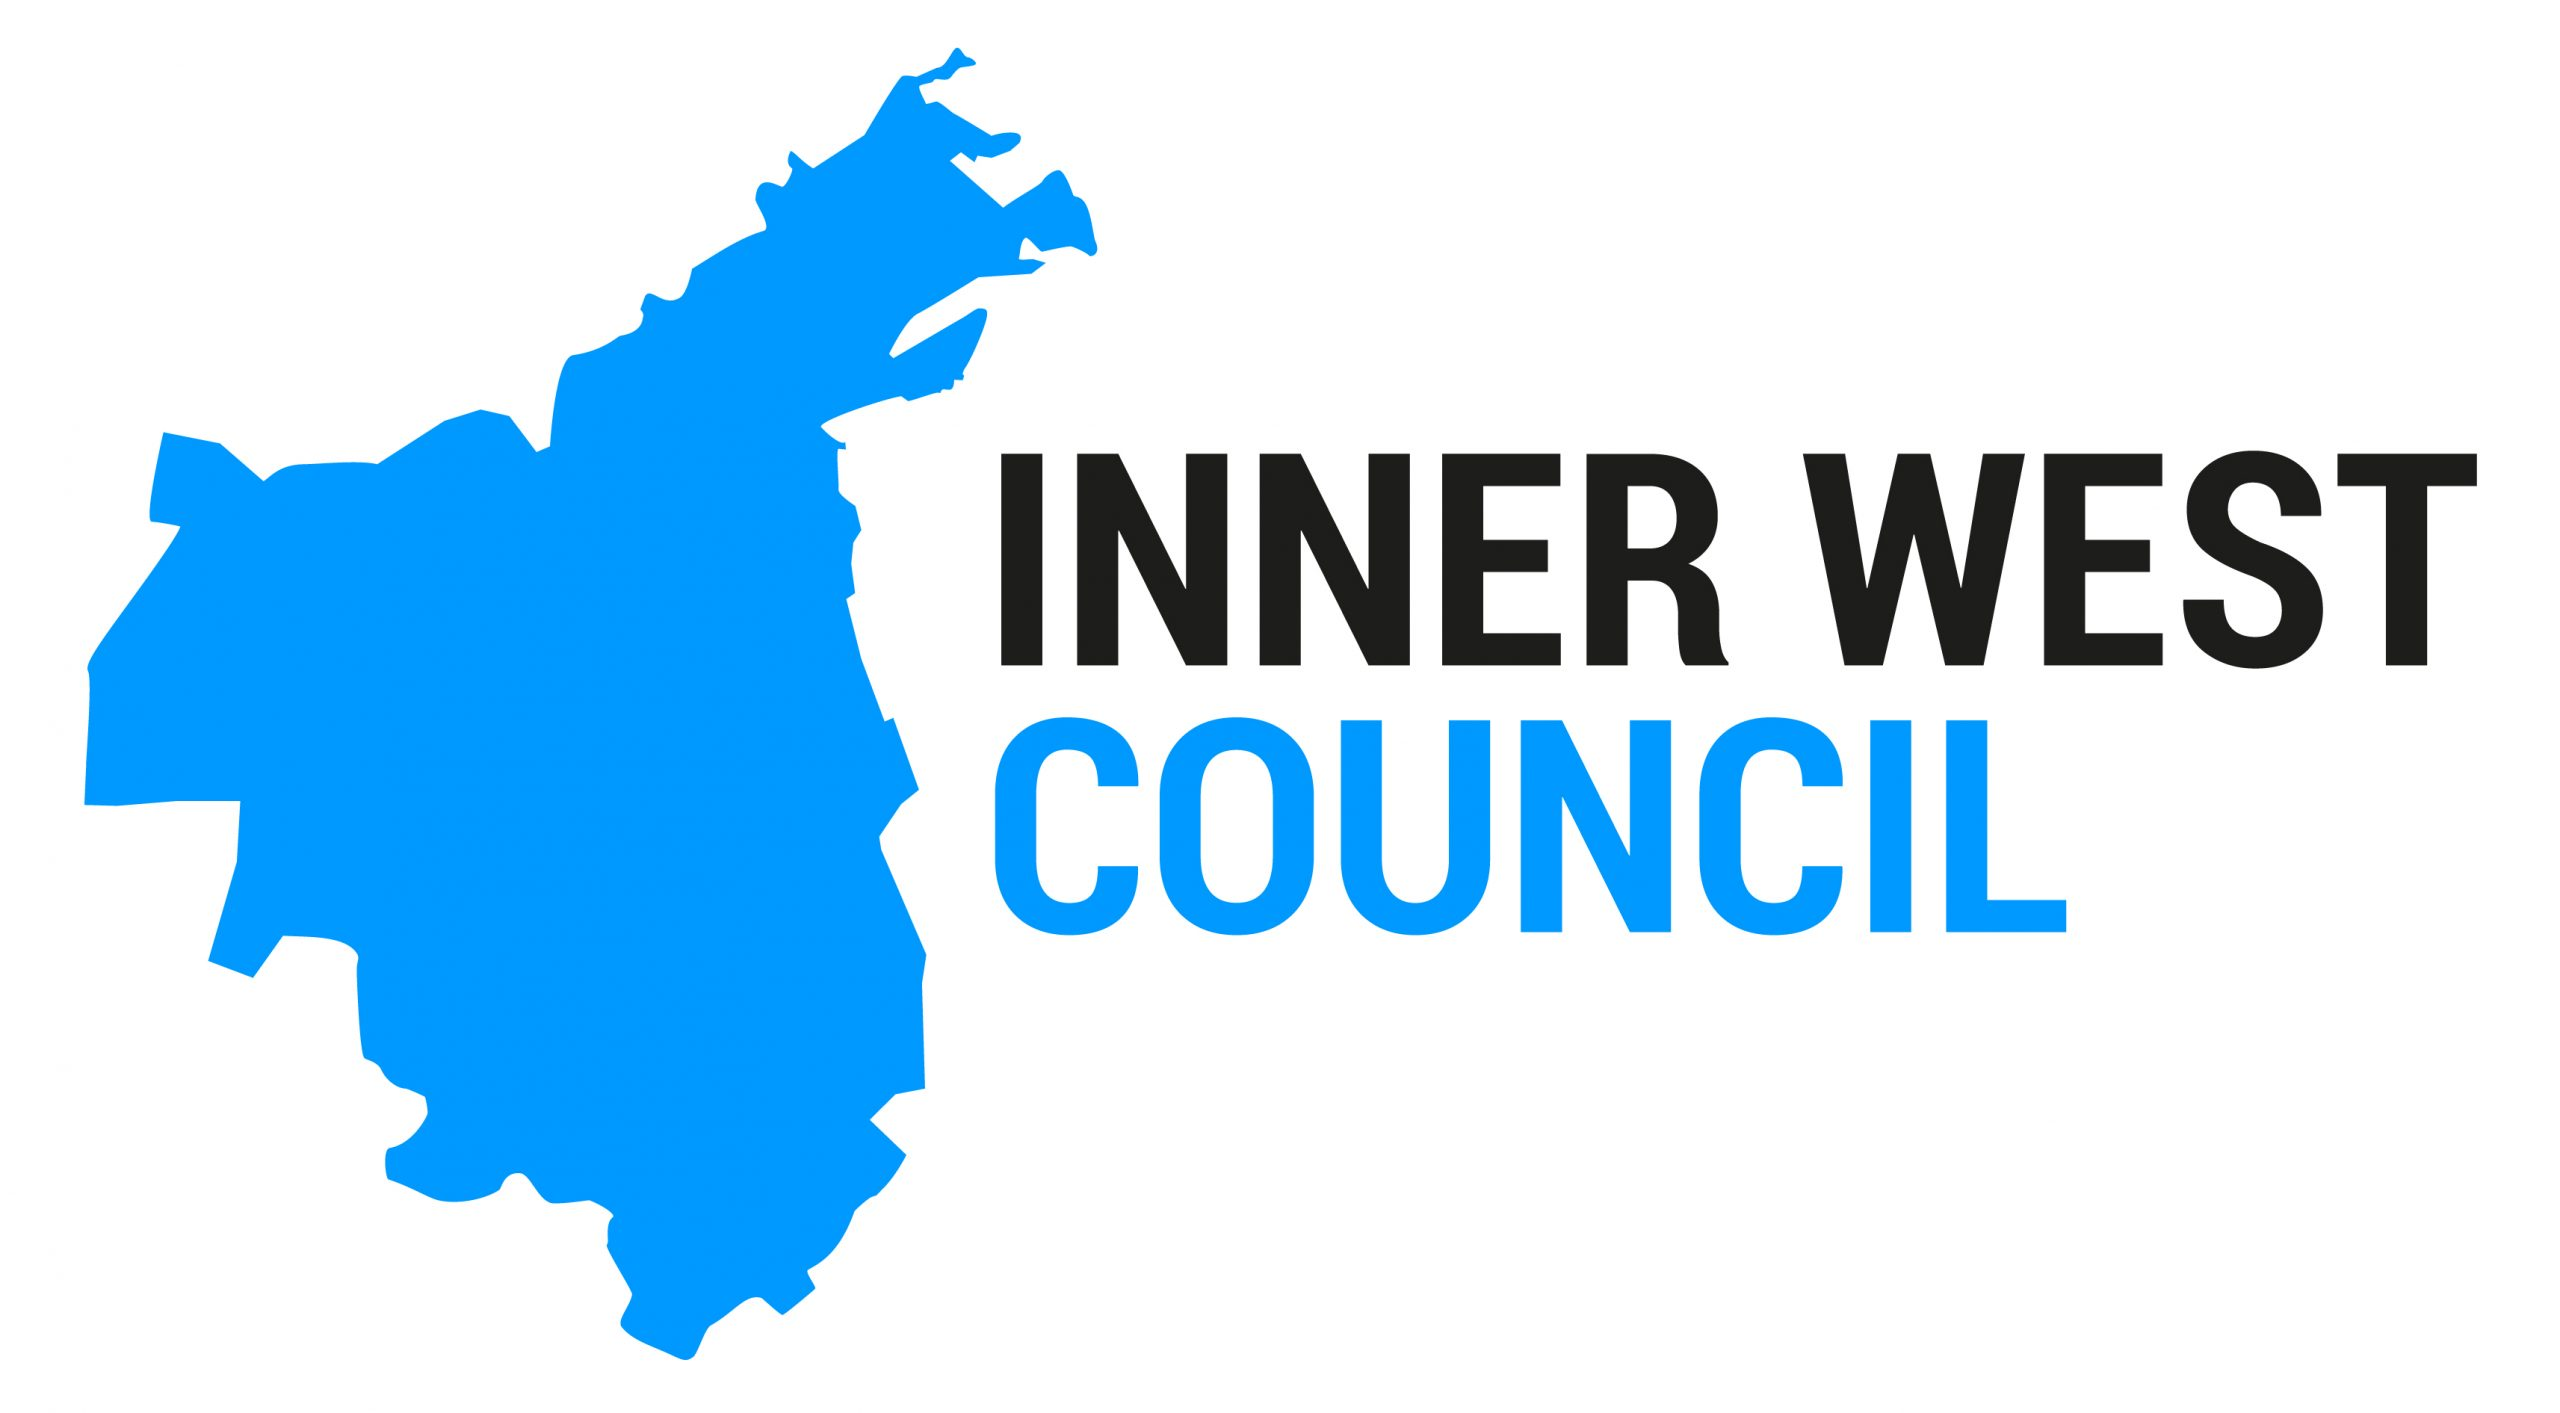 Inner West Council old logo